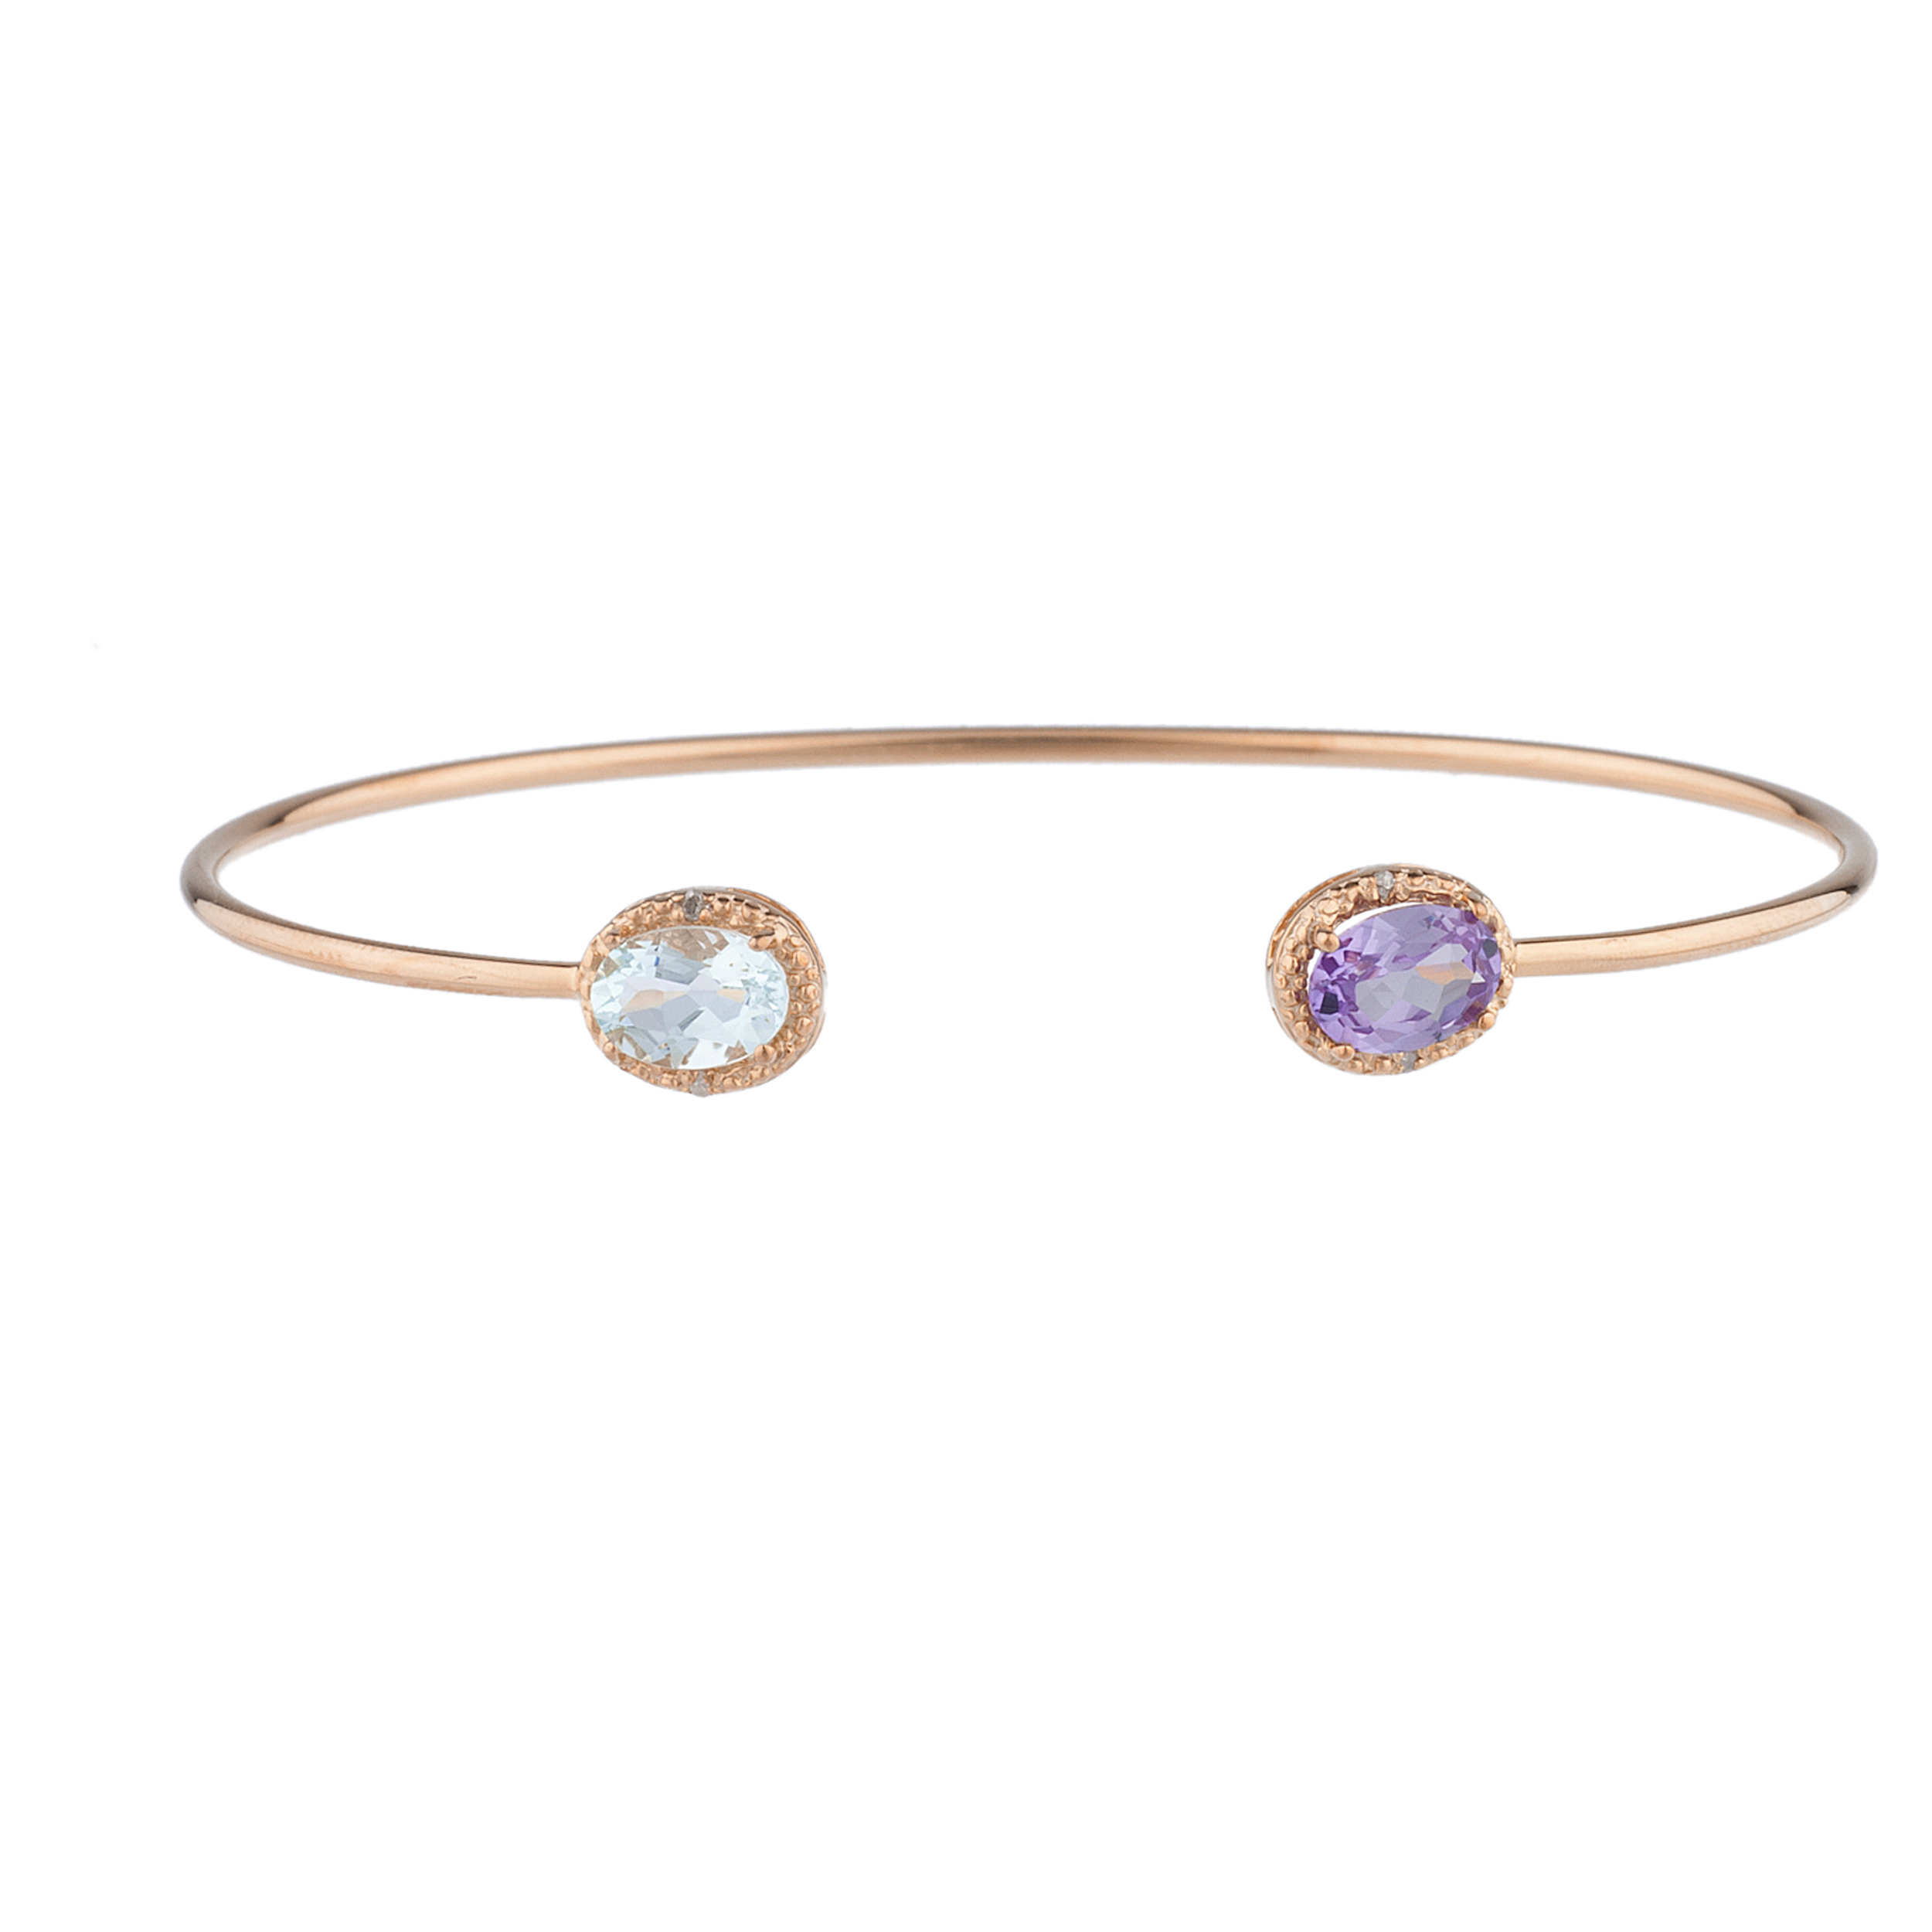 Genuine Aquamarine & Amethyst Diamond Bangle Oval Bracelet 14Kt Rose Gold Plated Over .925 Sterling Silver by Elizabeth Jewelry Inc